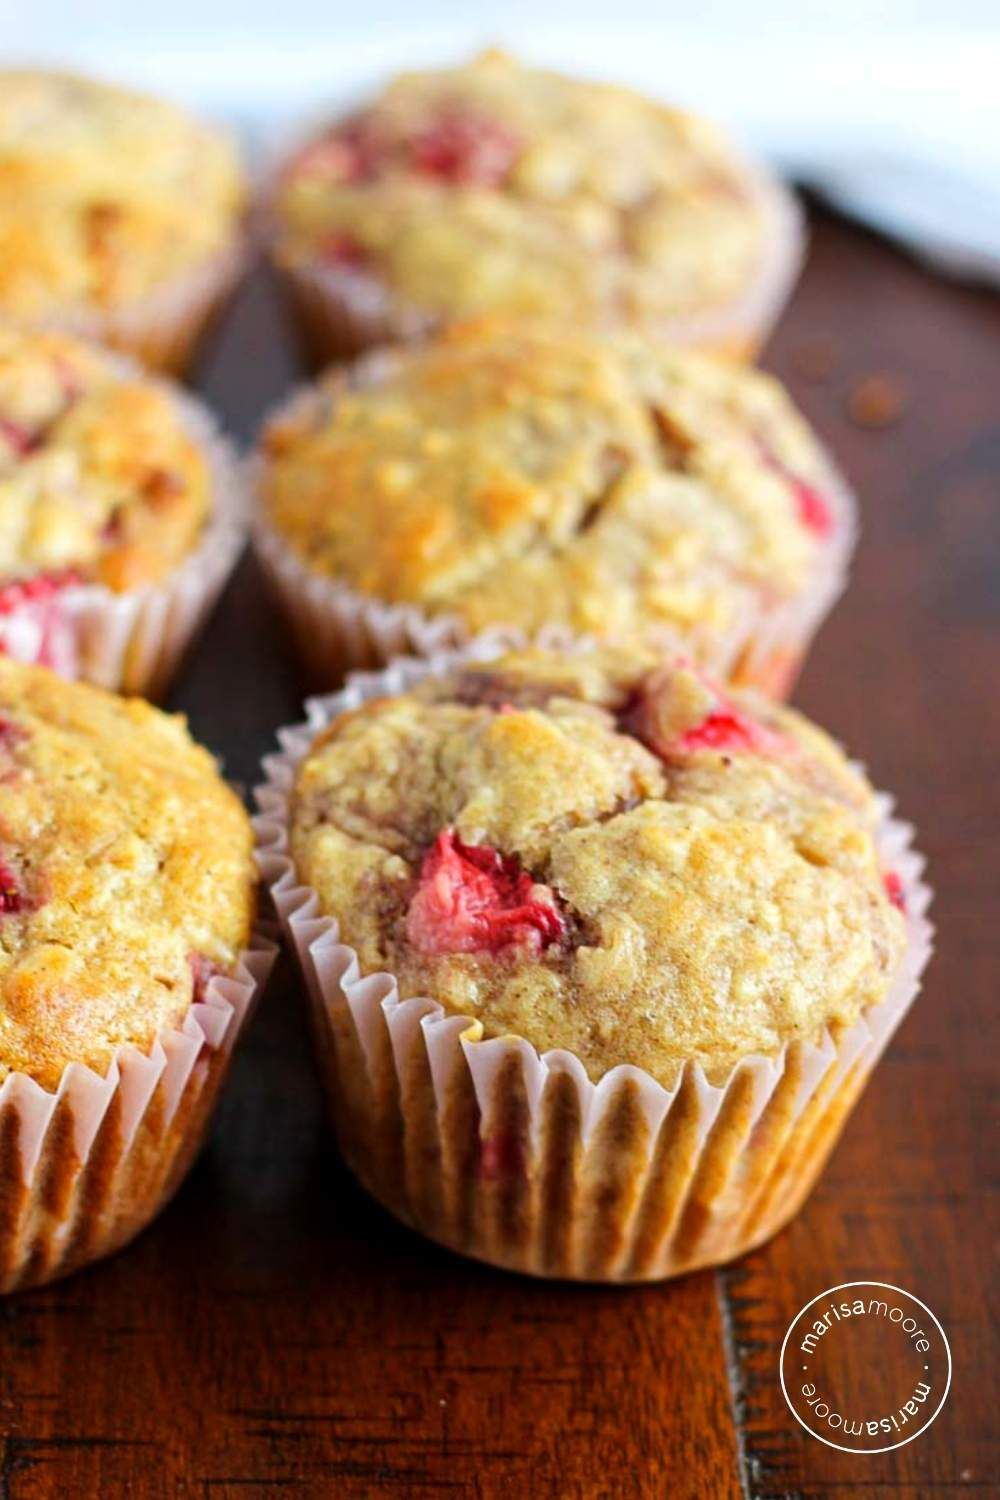 Fresh Strawberries Oats And Buttermilk Combine In These Healthier Breakfast Muffins That Are Perf Healthy Breakfast Muffins Fruit Desserts Easy Fruit Recipes